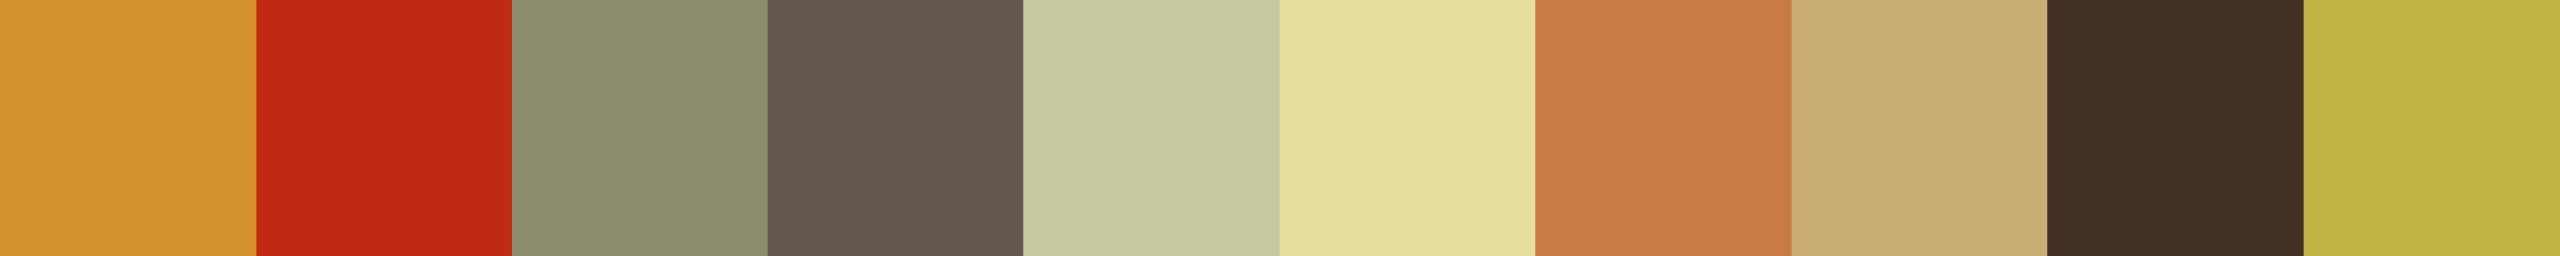 567 Ophelia Color Palette